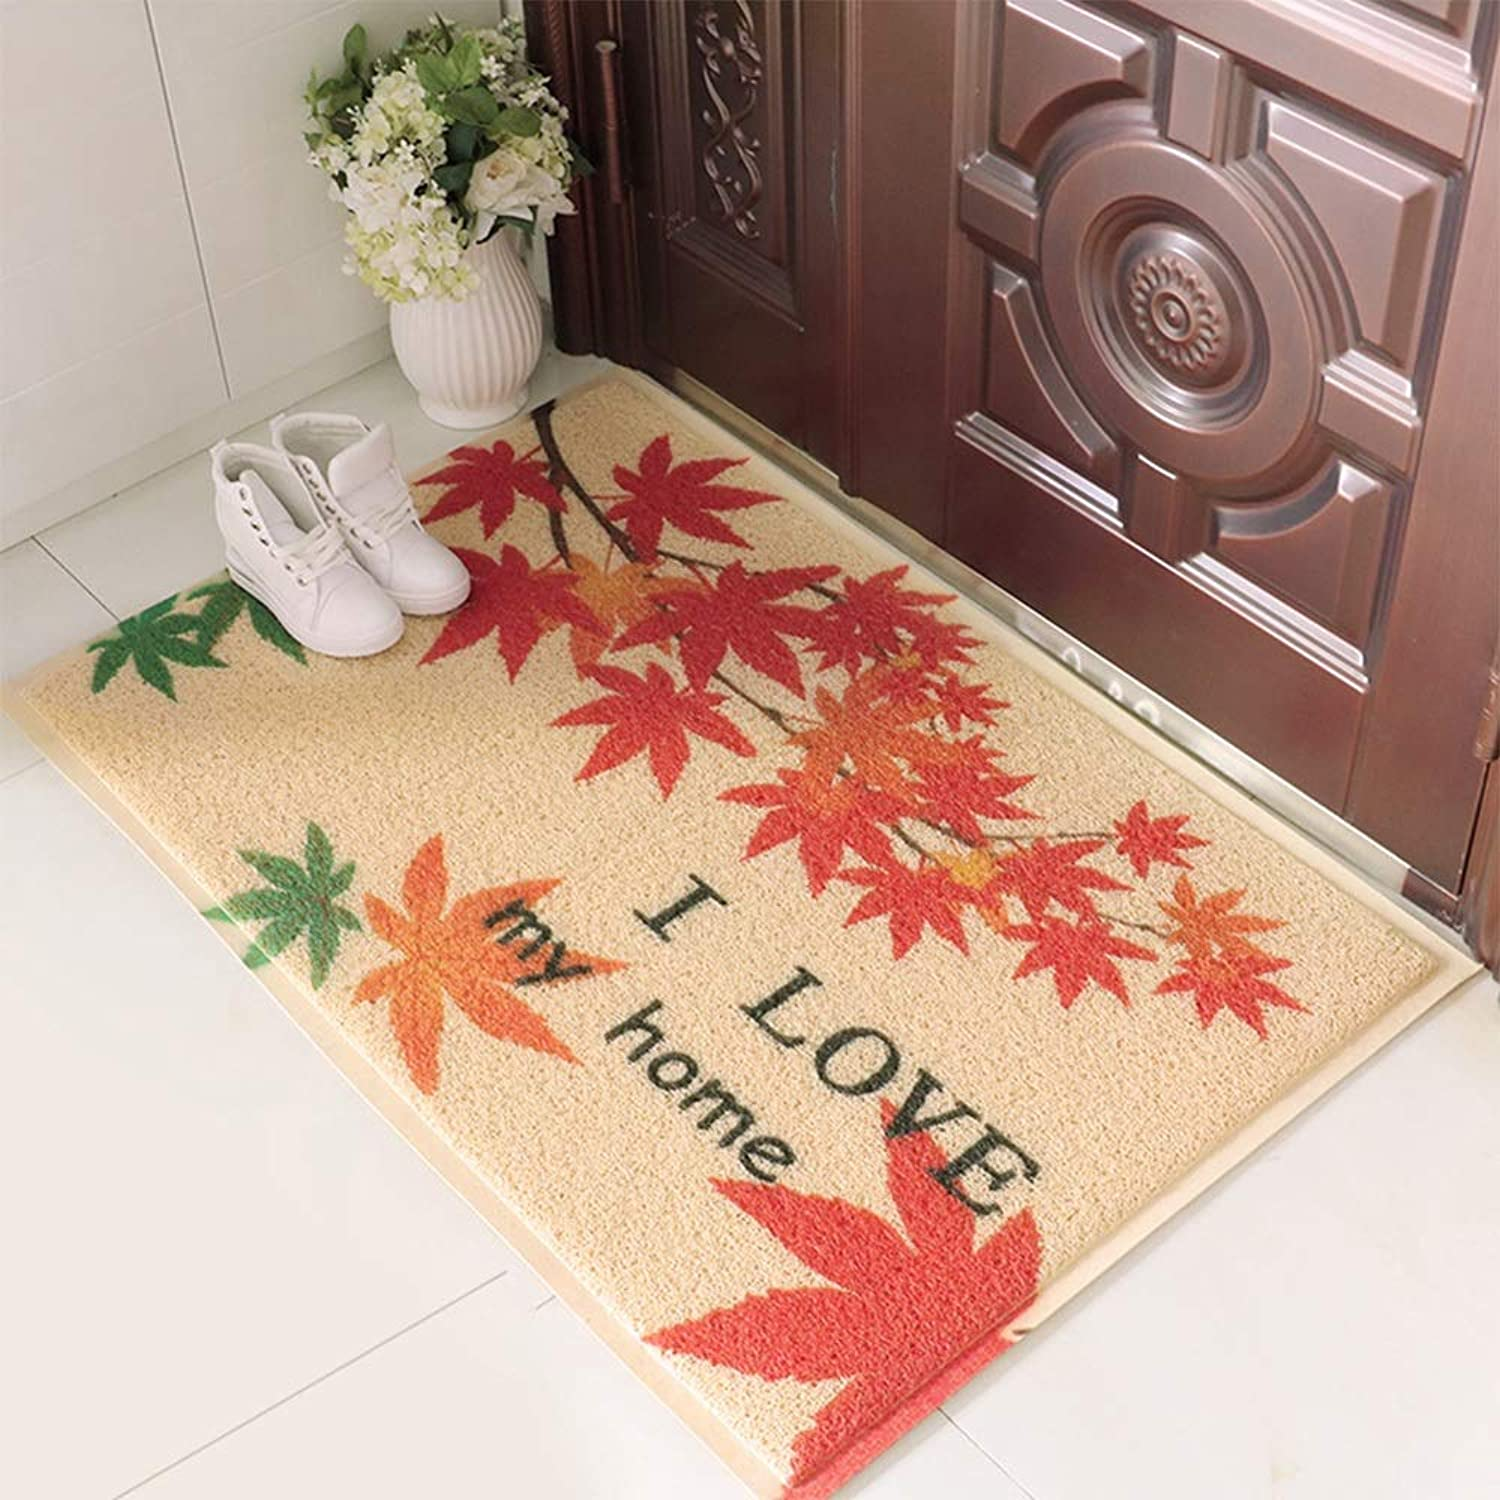 Ping Bu Qing Yun Floor mat - Blended Fabric TPR Anti-Skid Rubber Sole, Sweeping dust, Thickening Anti-Skid, European Foyer Porch Door mat mat mat Anti-Slip mat - 5 Styles Optional Carpet